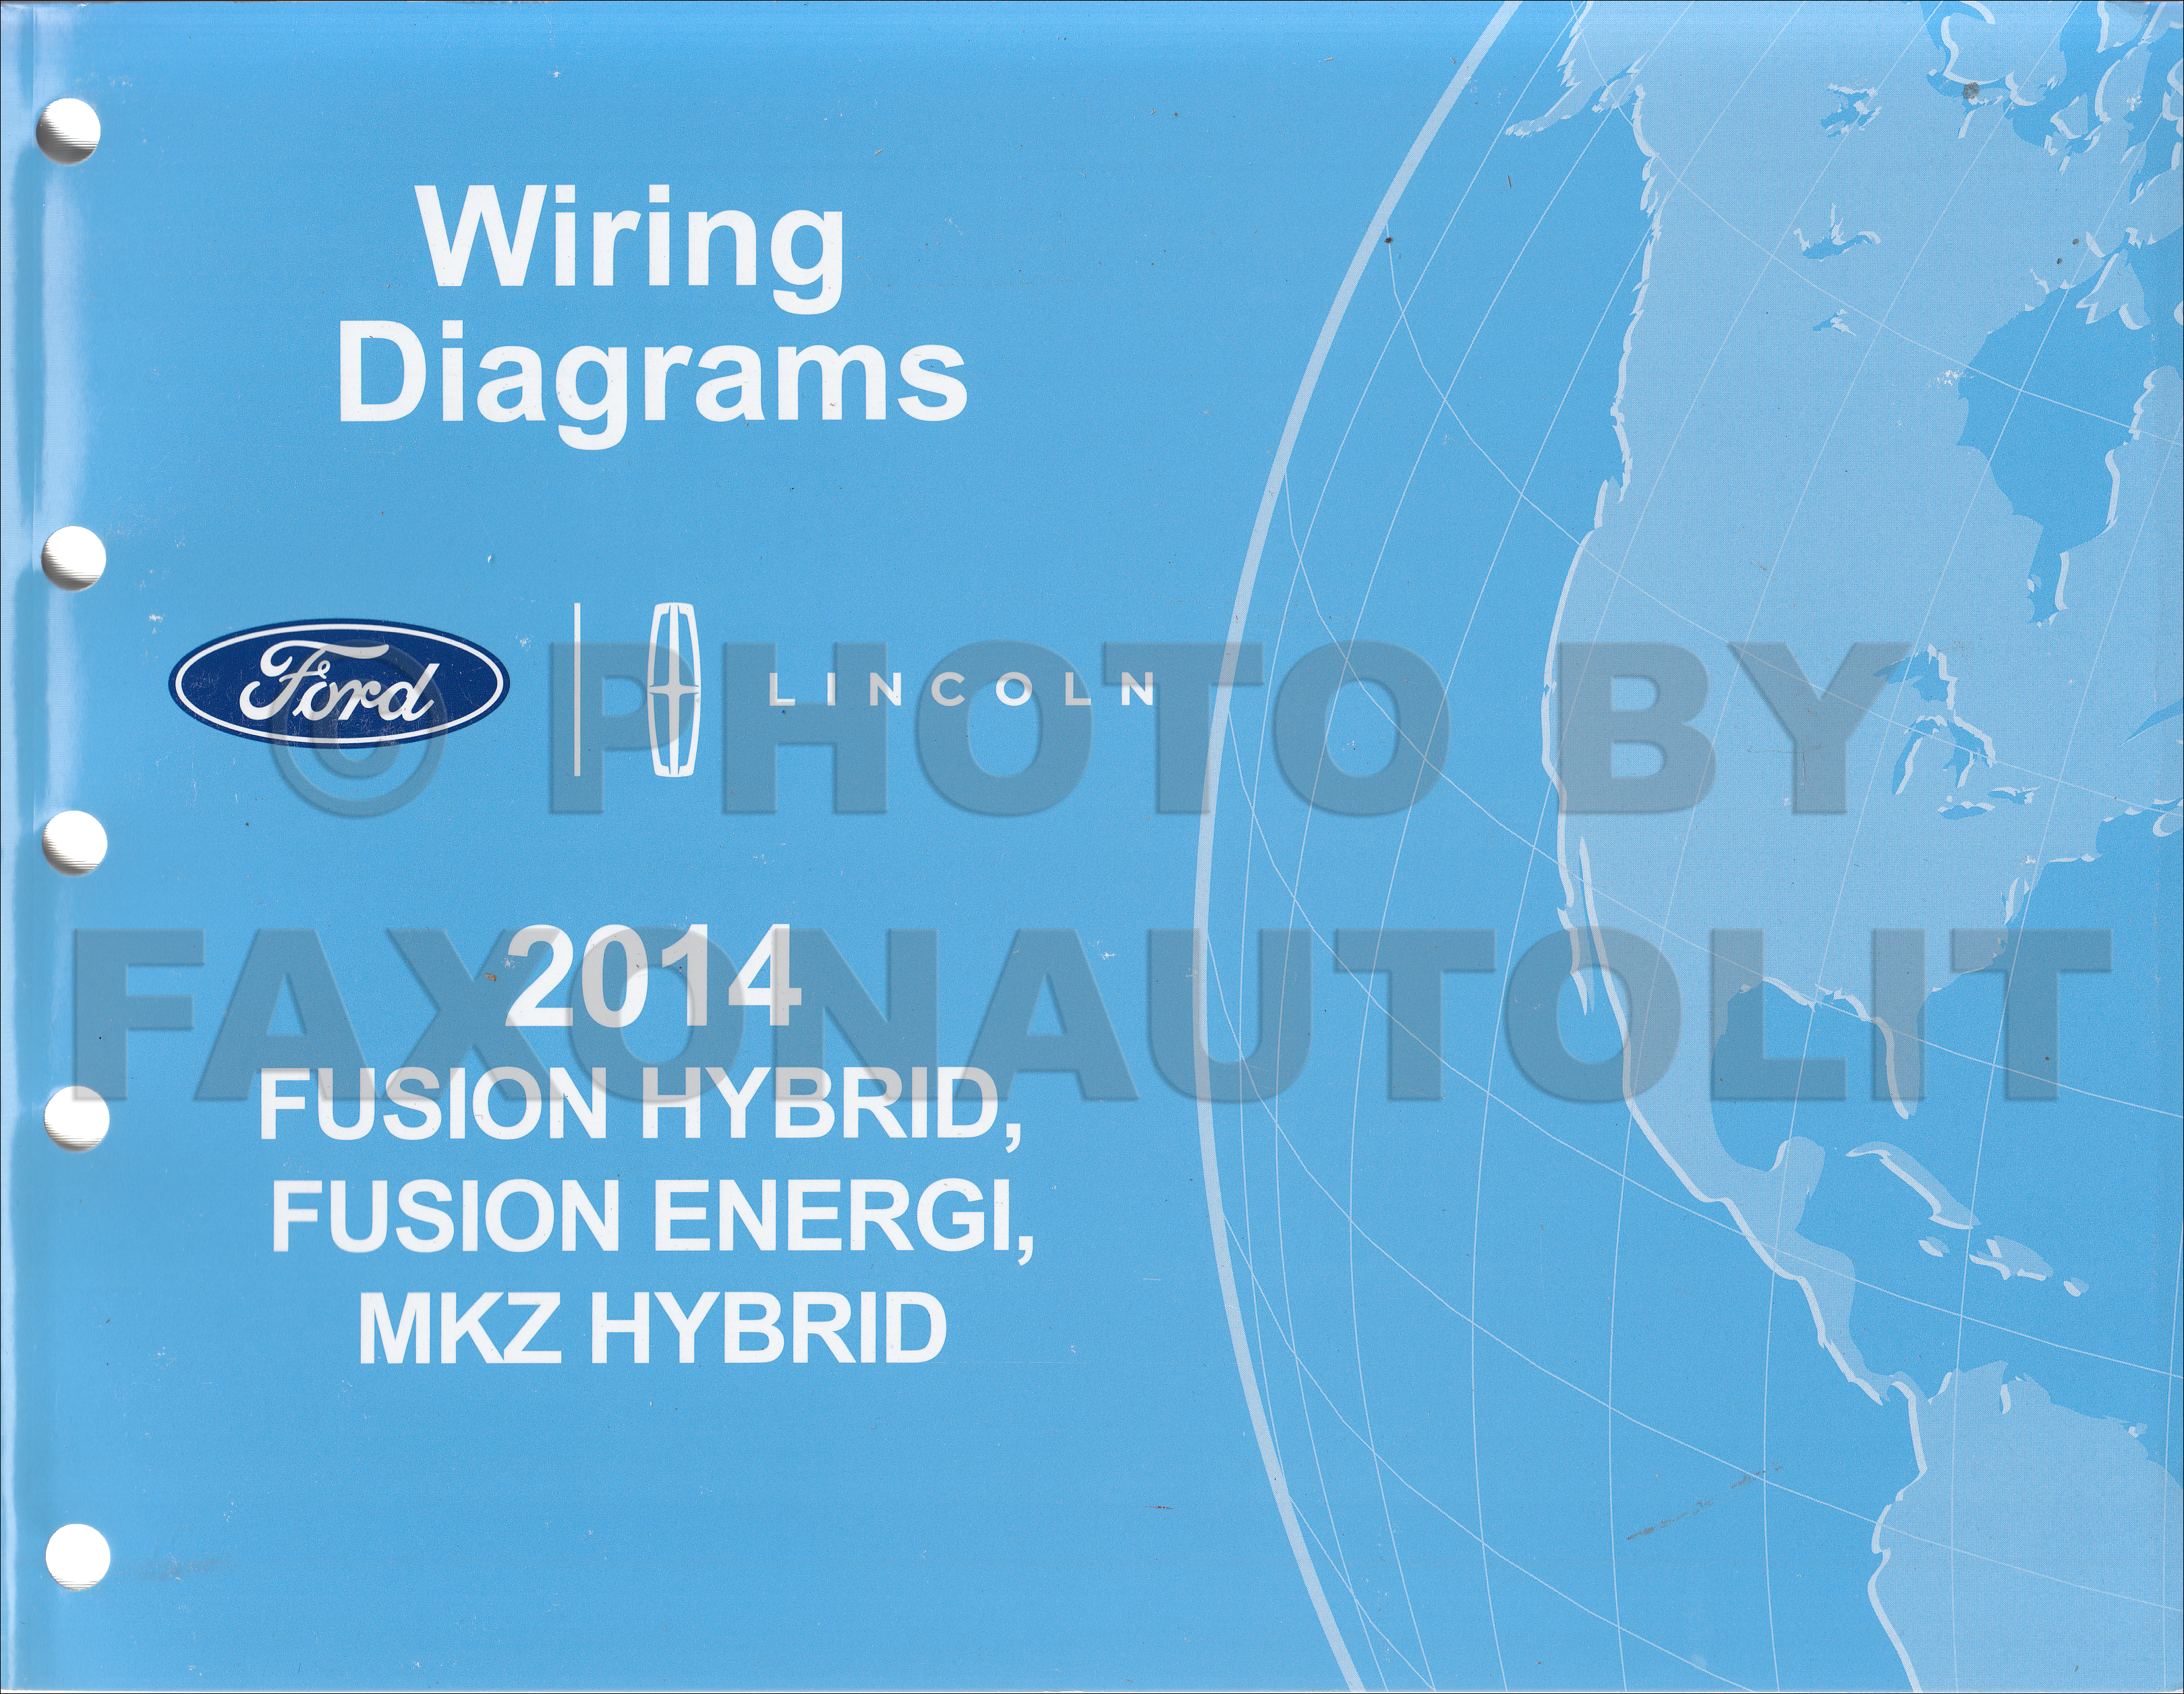 ford fusion hybrid wiring diagram diagram ford fusion service manuals owner maintenance and repair